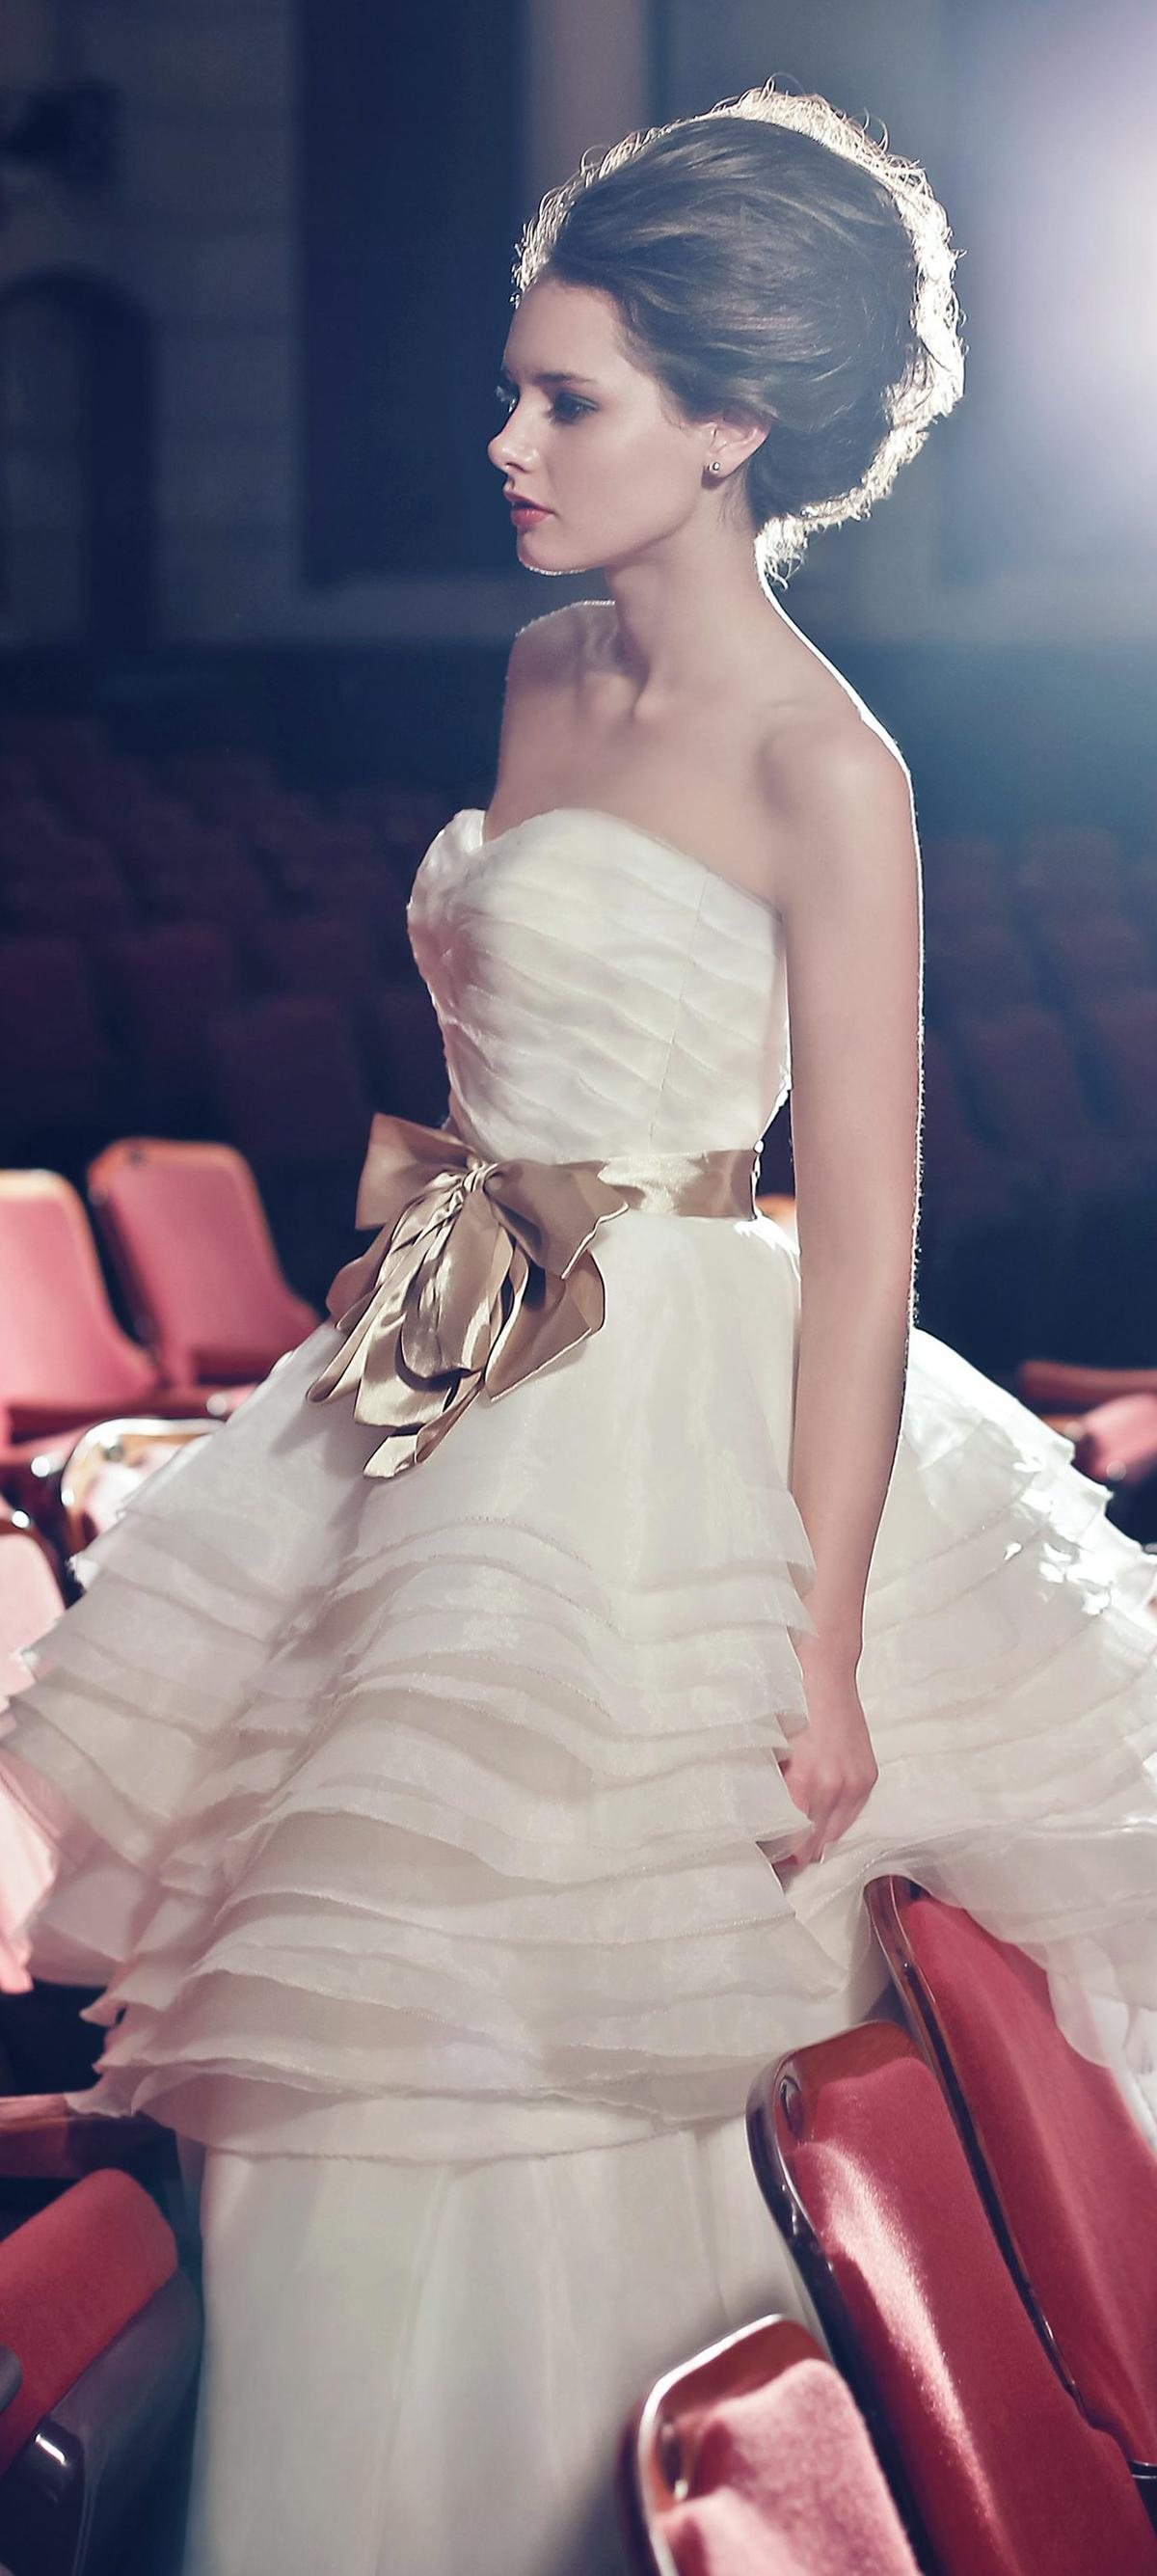 http://www.pwimages.com/images/perfectbride/439a5986f0518ed98749ff5139c013f2-004-cropped.jpg